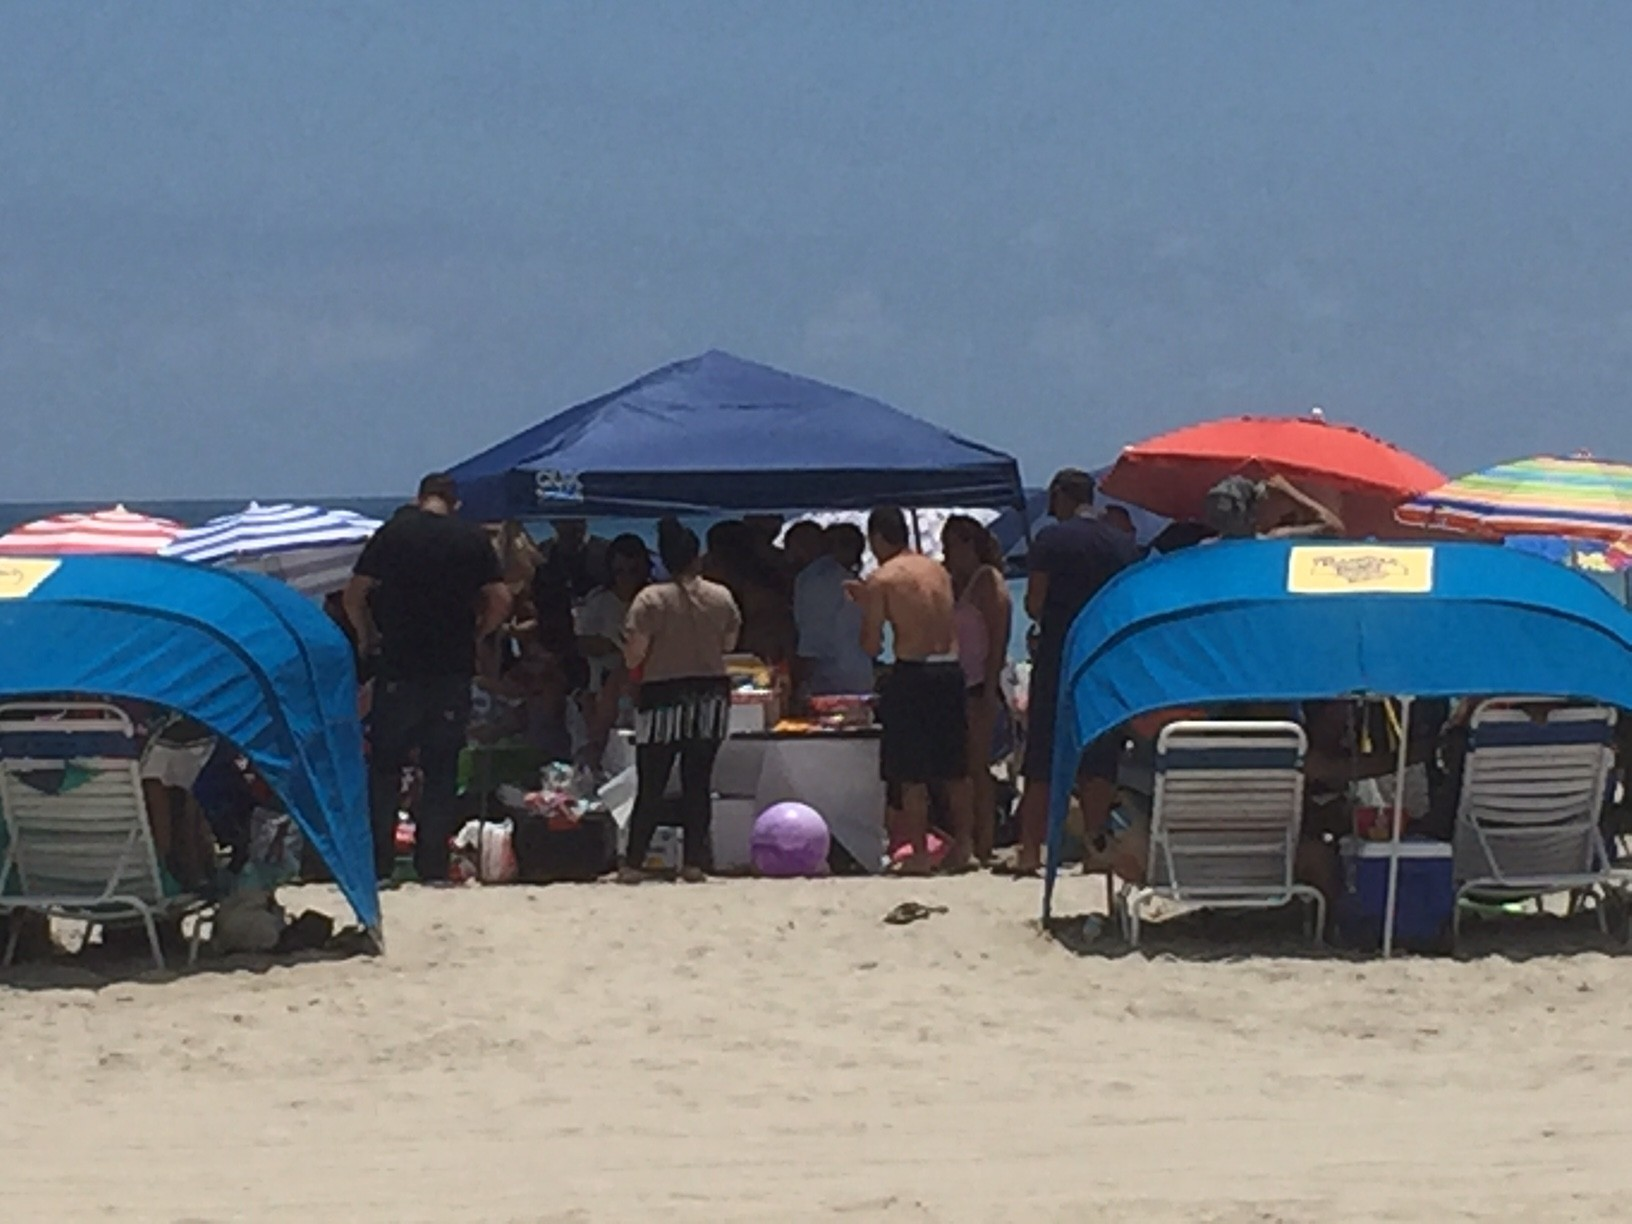 Hollywood eyes crackdown on umbrellas tents and coolers on beach - Sun Sentinel & Hollywood eyes crackdown on umbrellas tents and coolers on beach ...